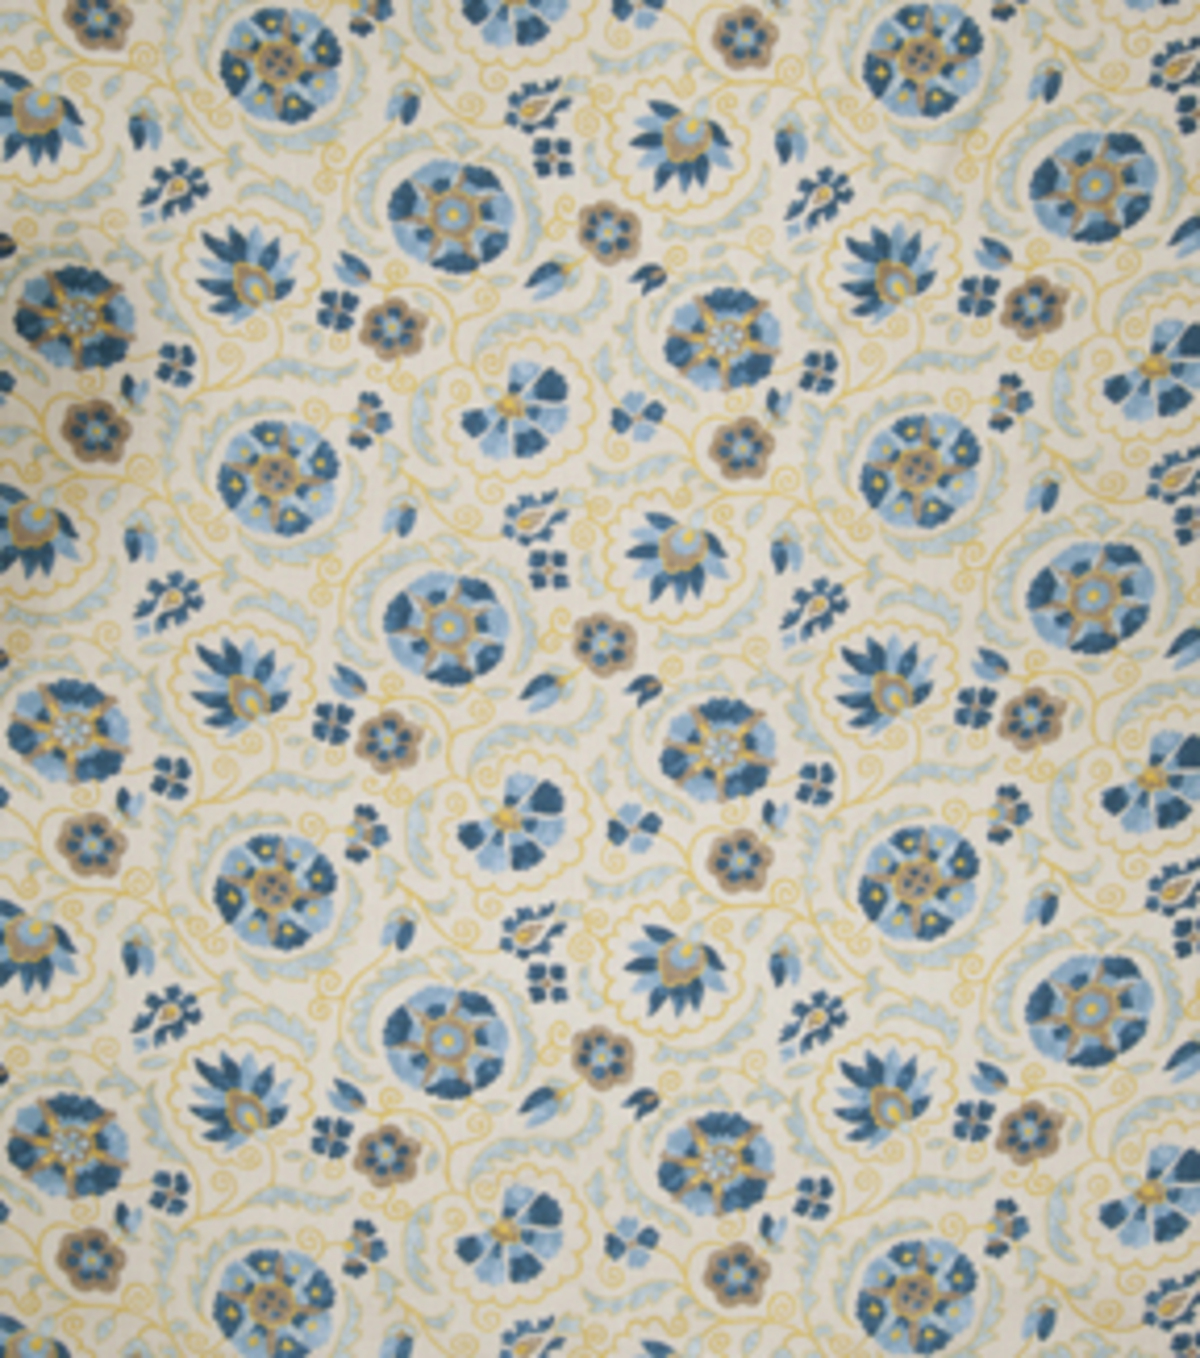 Home Decor 8\u0022x8\u0022 Fabric Swatch-Jaclyn Smith Clarinet Denim